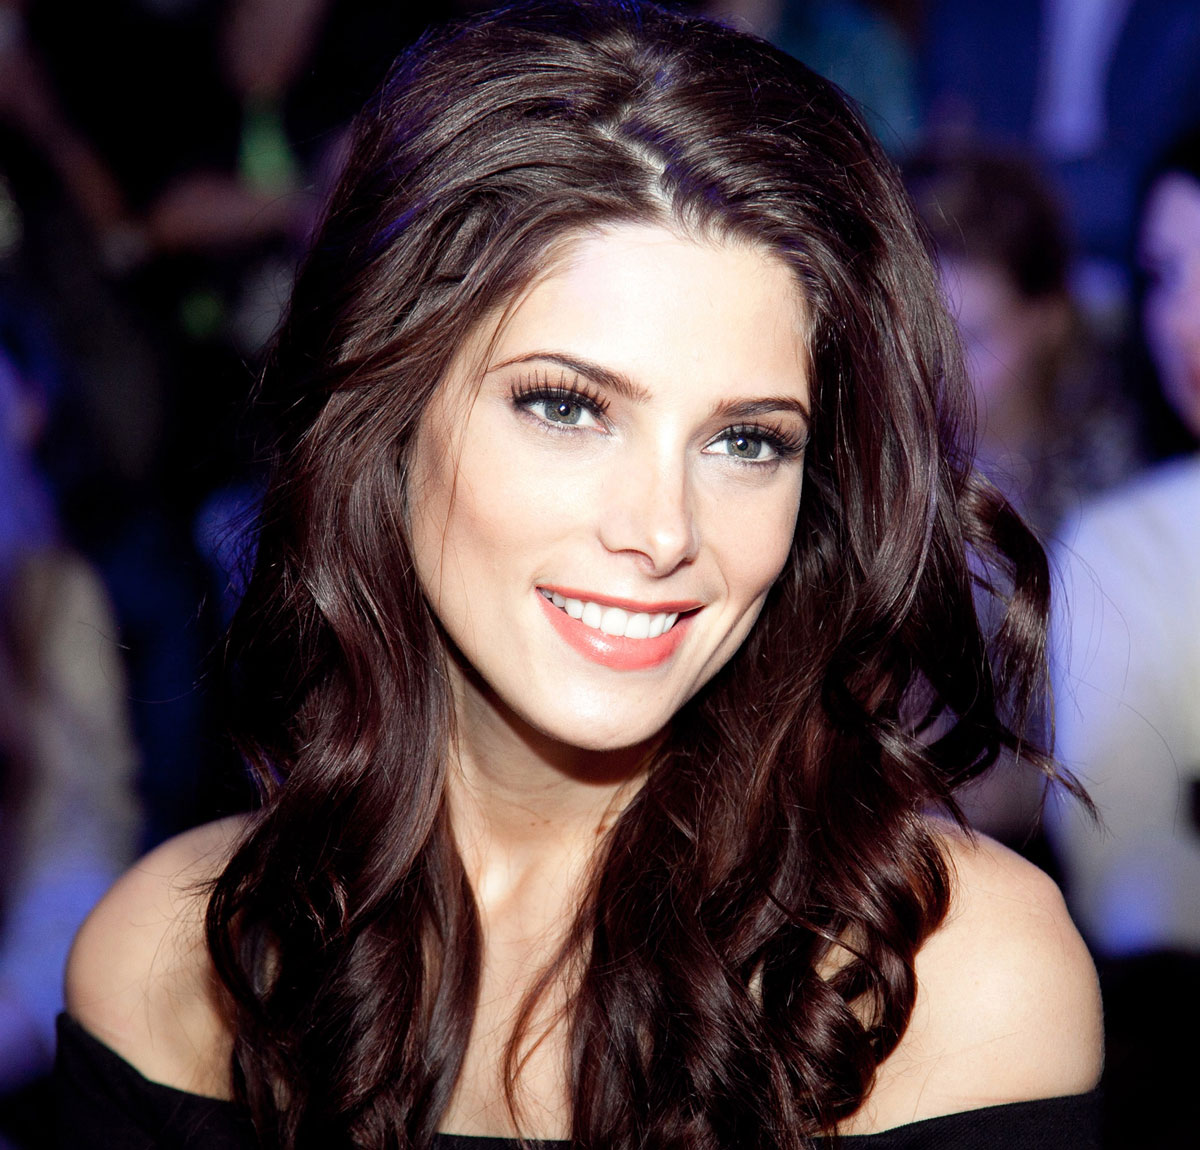 Ashley Greene earned a  million dollar salary, leaving the net worth at 11 million in 2017